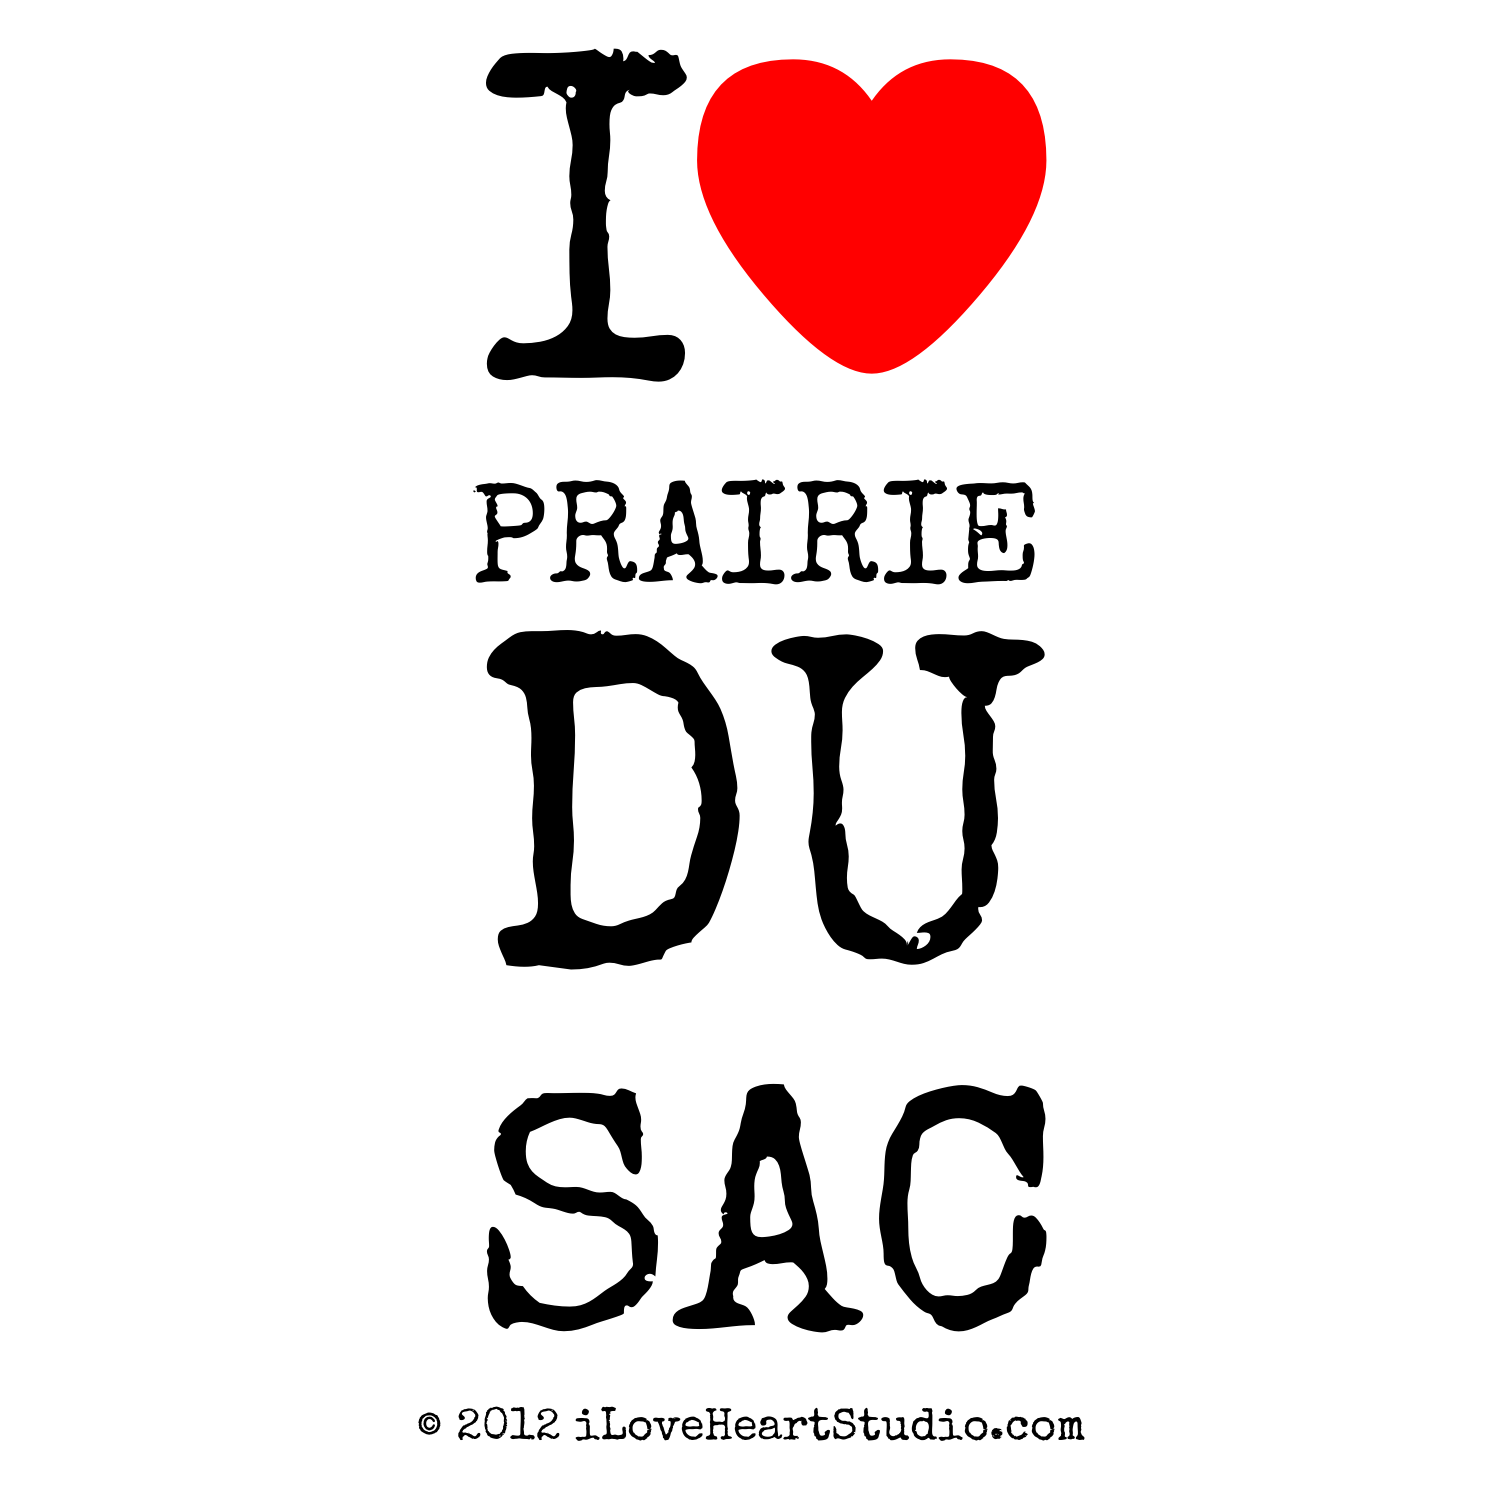 prairie du sac milf women Address: 250 26th street, suite 100 prairie du sac, wi 53578 phone: 608-643-3351 (provider services.